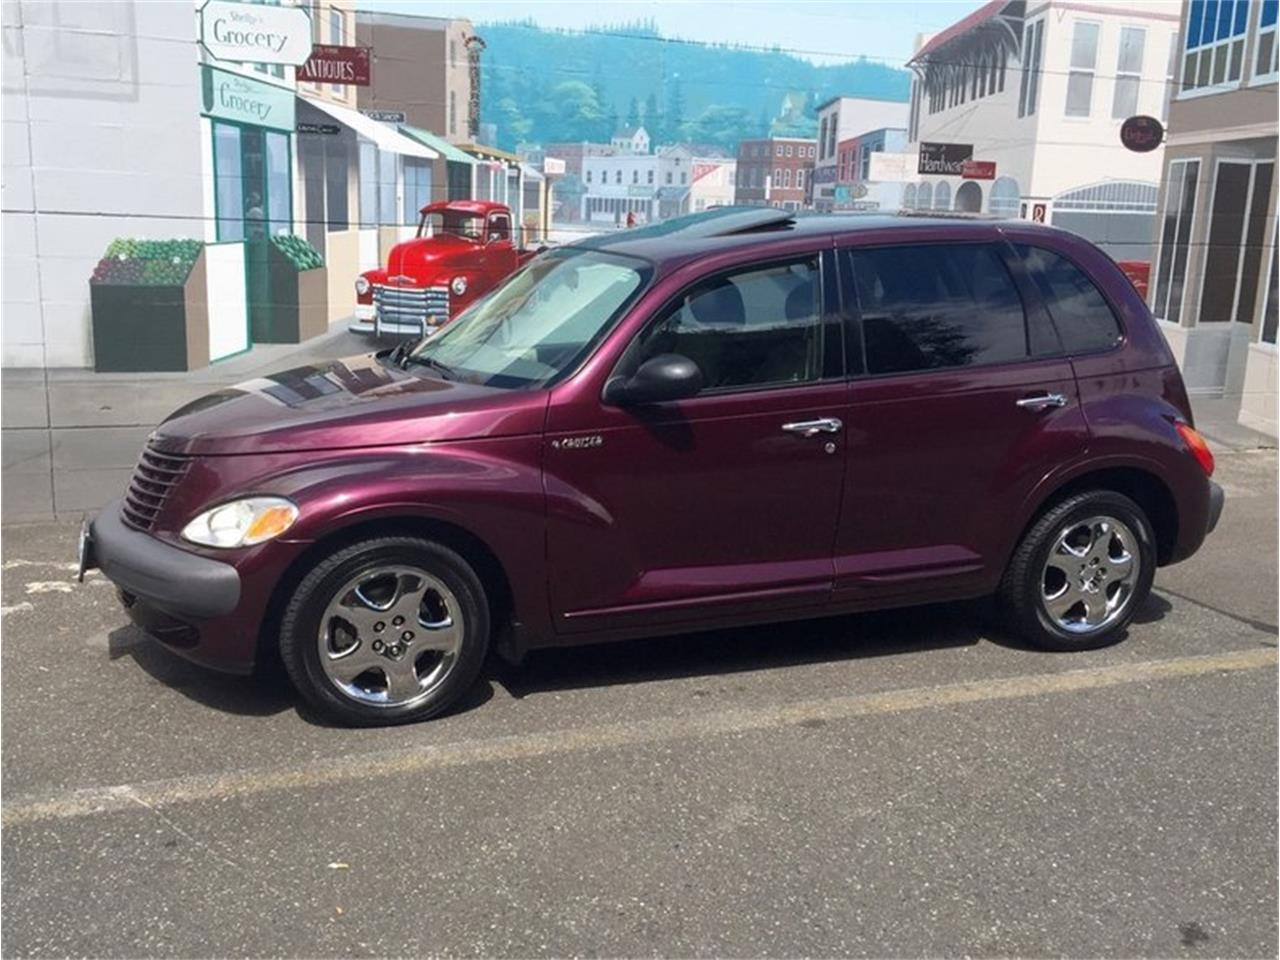 Large Picture of '02 PT Cruiser located in Seattle Washington Auction Vehicle - LVPH